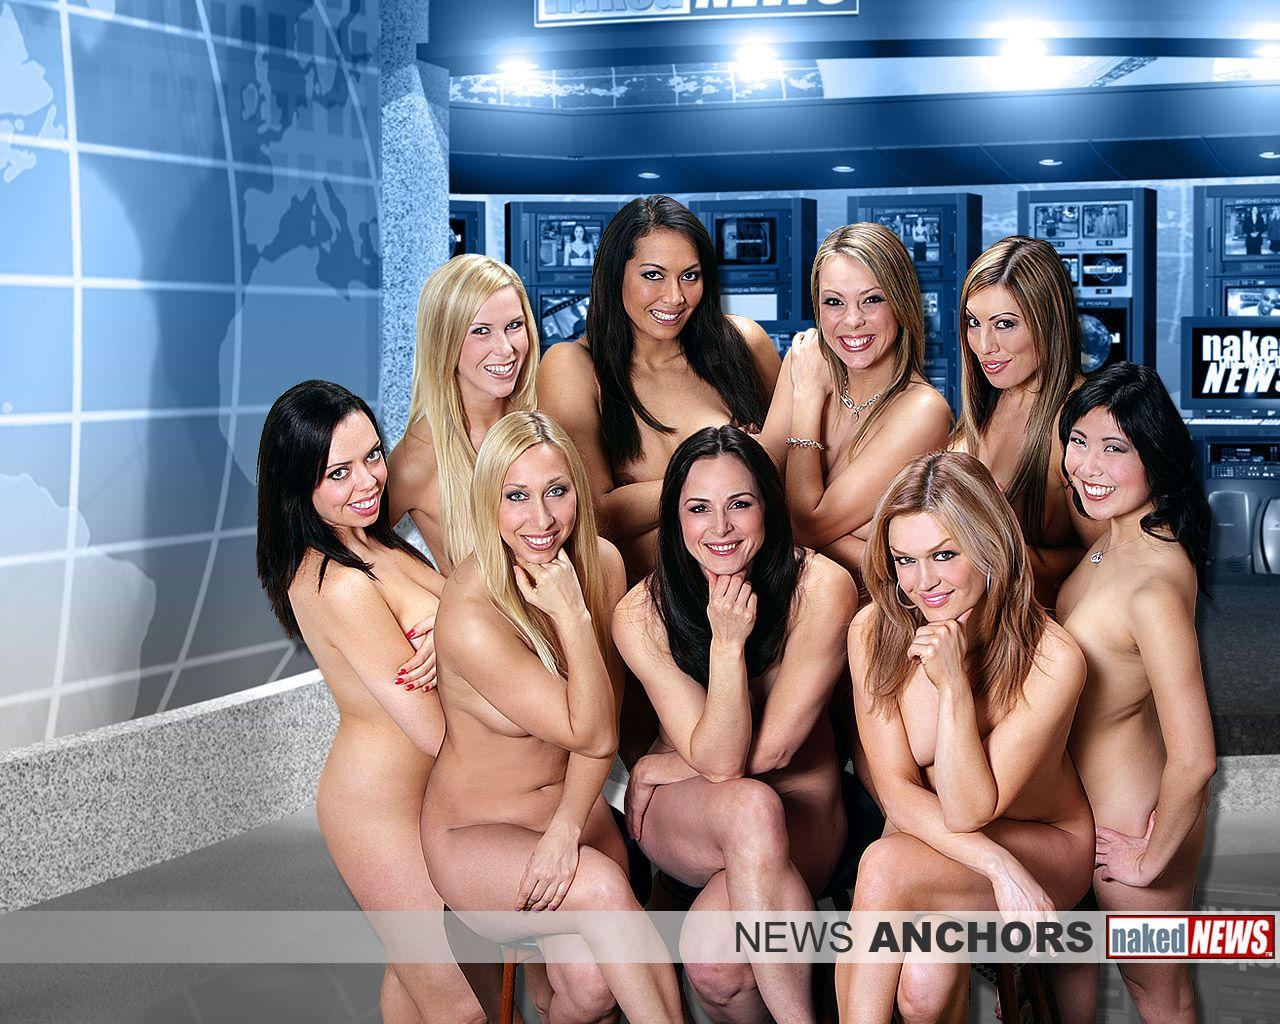 Naked News April 7 2015